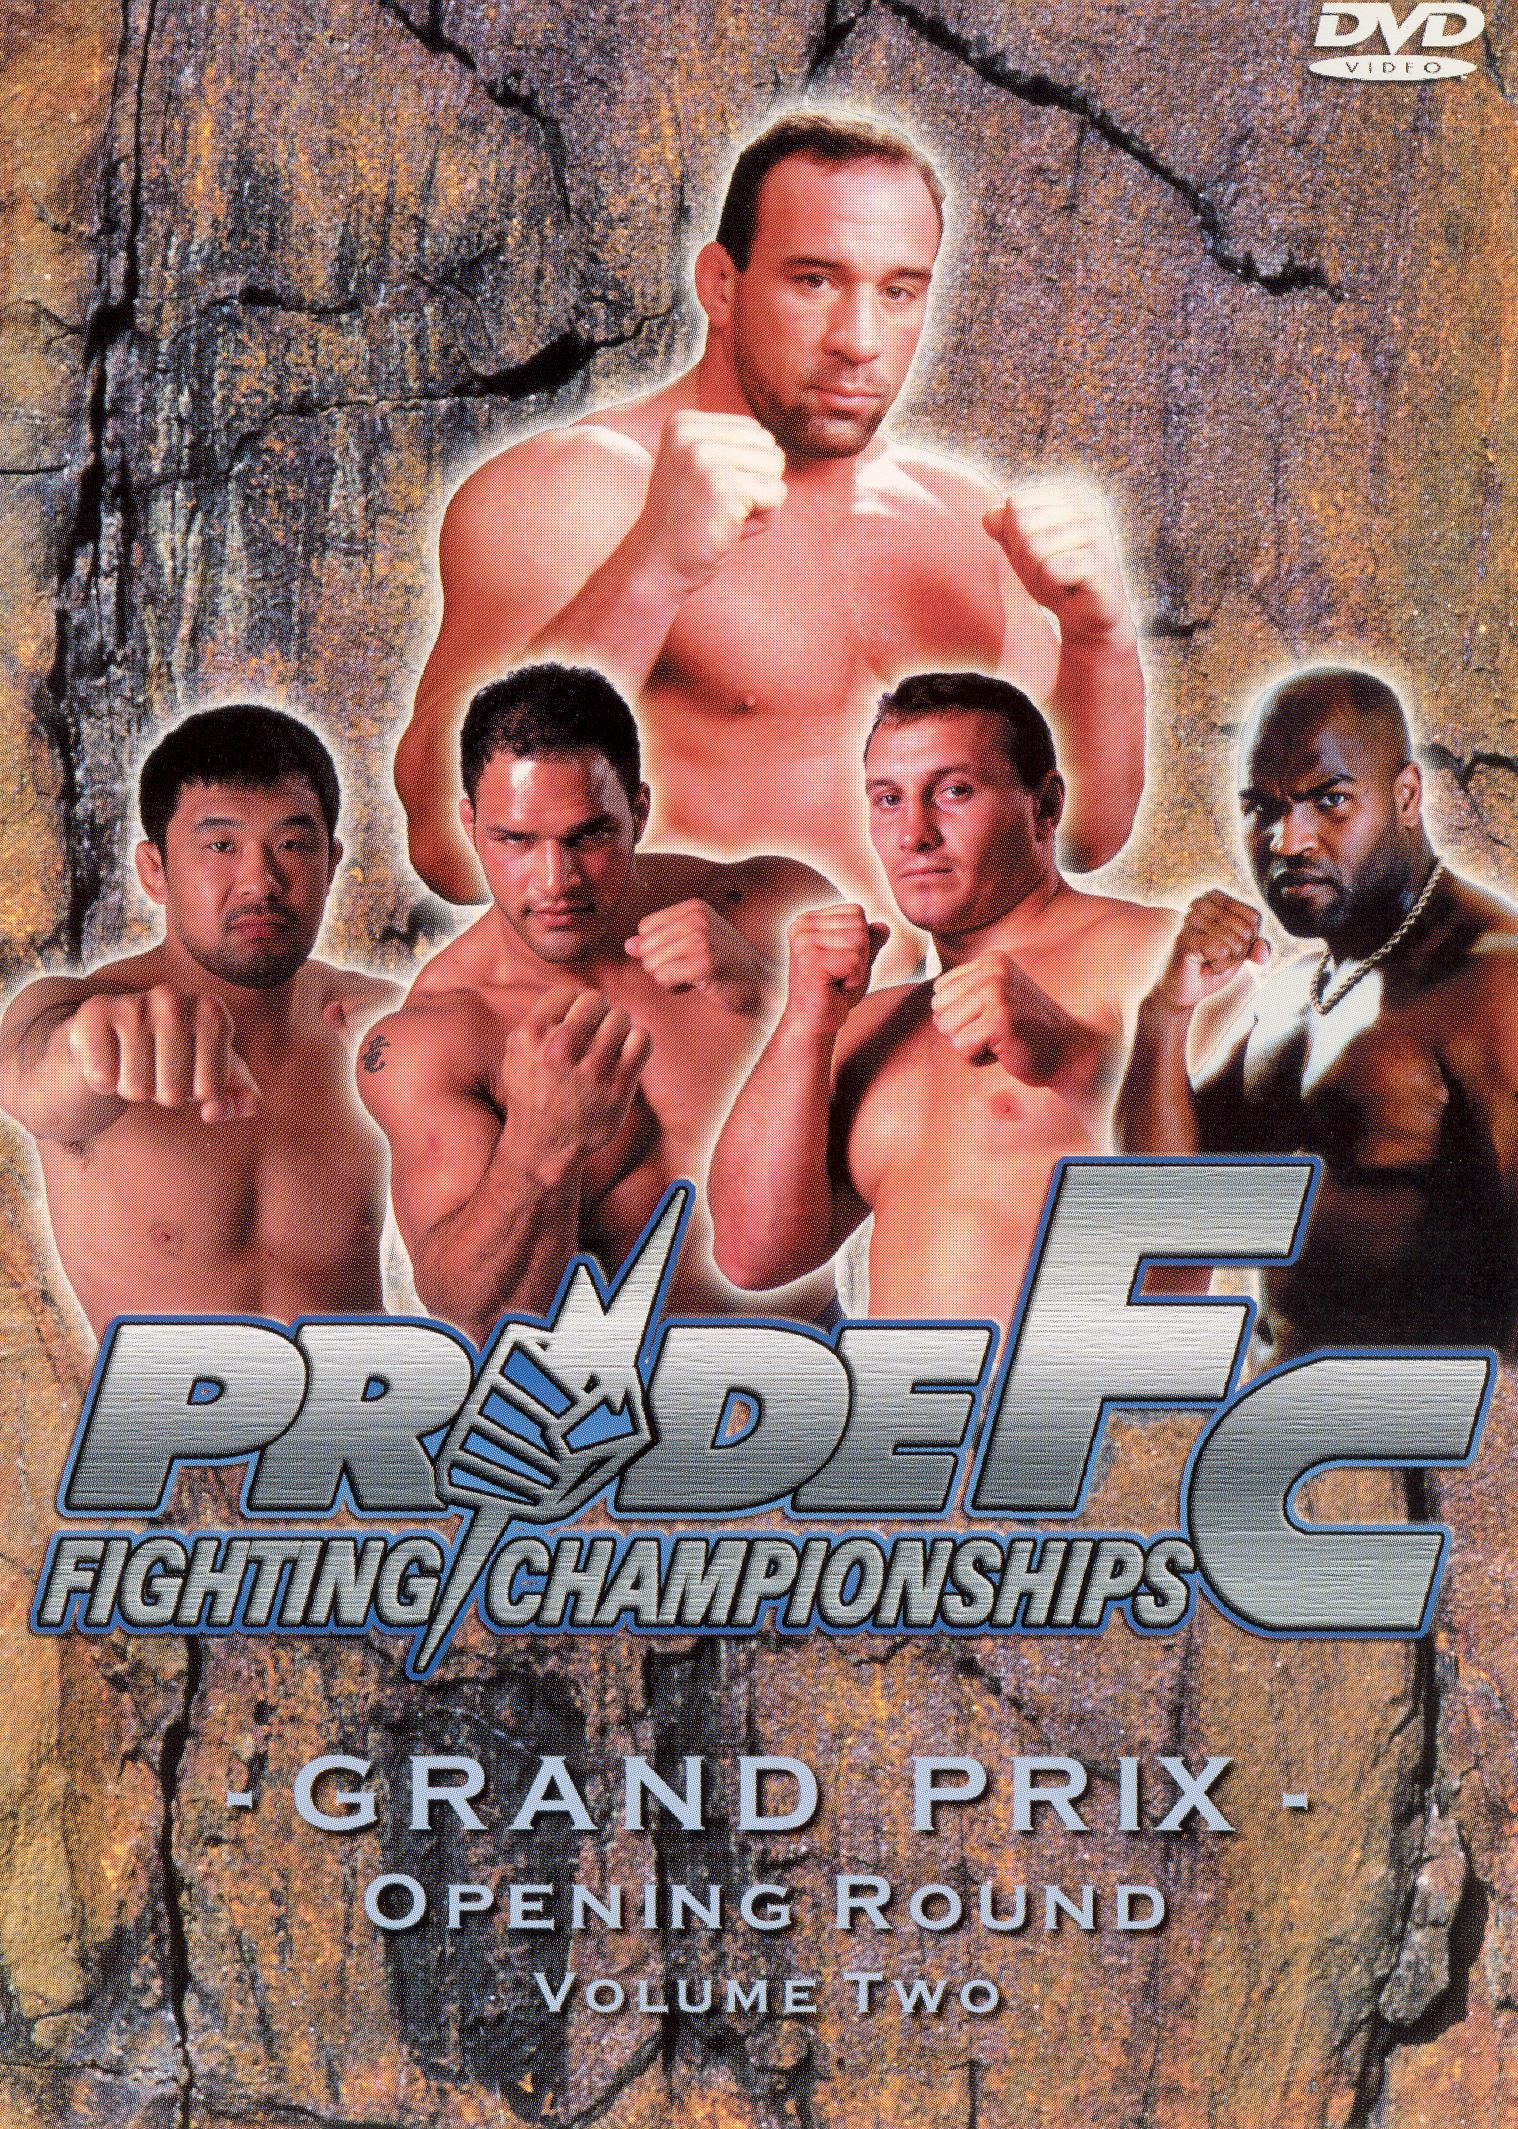 Pride Fighting Championships: Grand Prix - Opening Round, Vol. 2